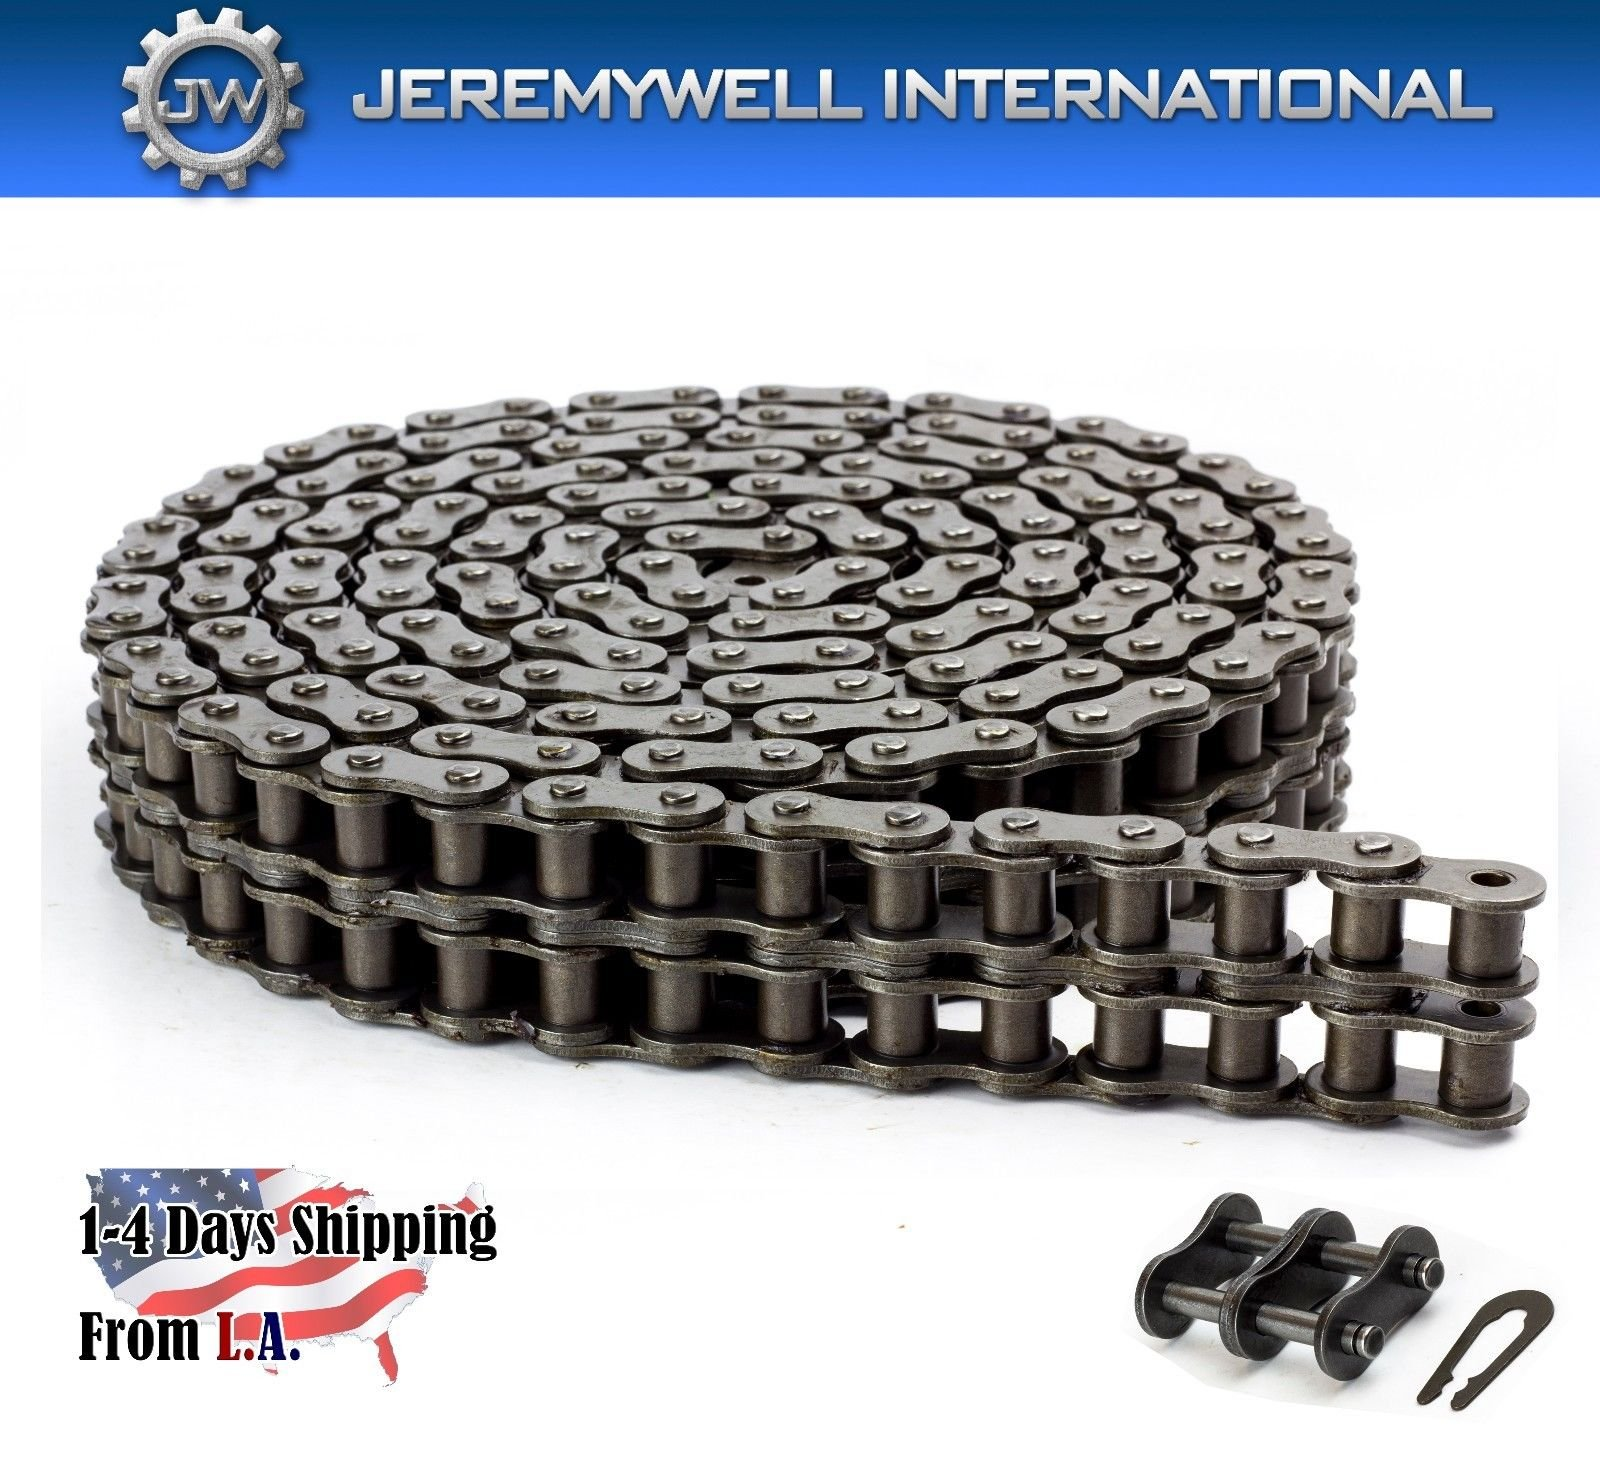 35-2 Double Strand Duplex Roller Chain 10 Feet with 1 Connecting Link by Jeremywell